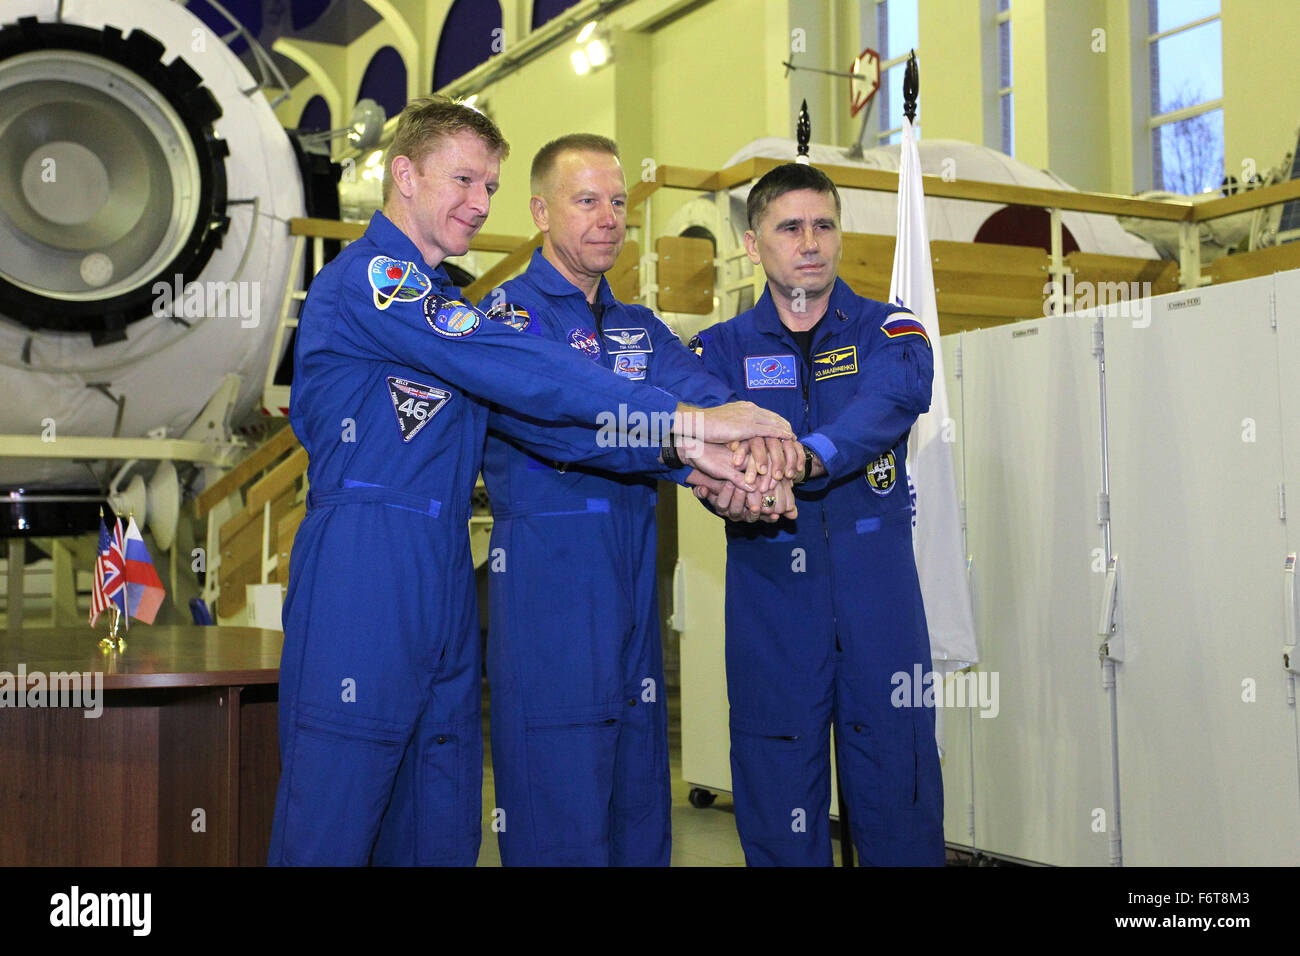 Star City, Russia. 19th November, 2015. International Space Station Expedition 46 prime crew members European Space - Stock Image